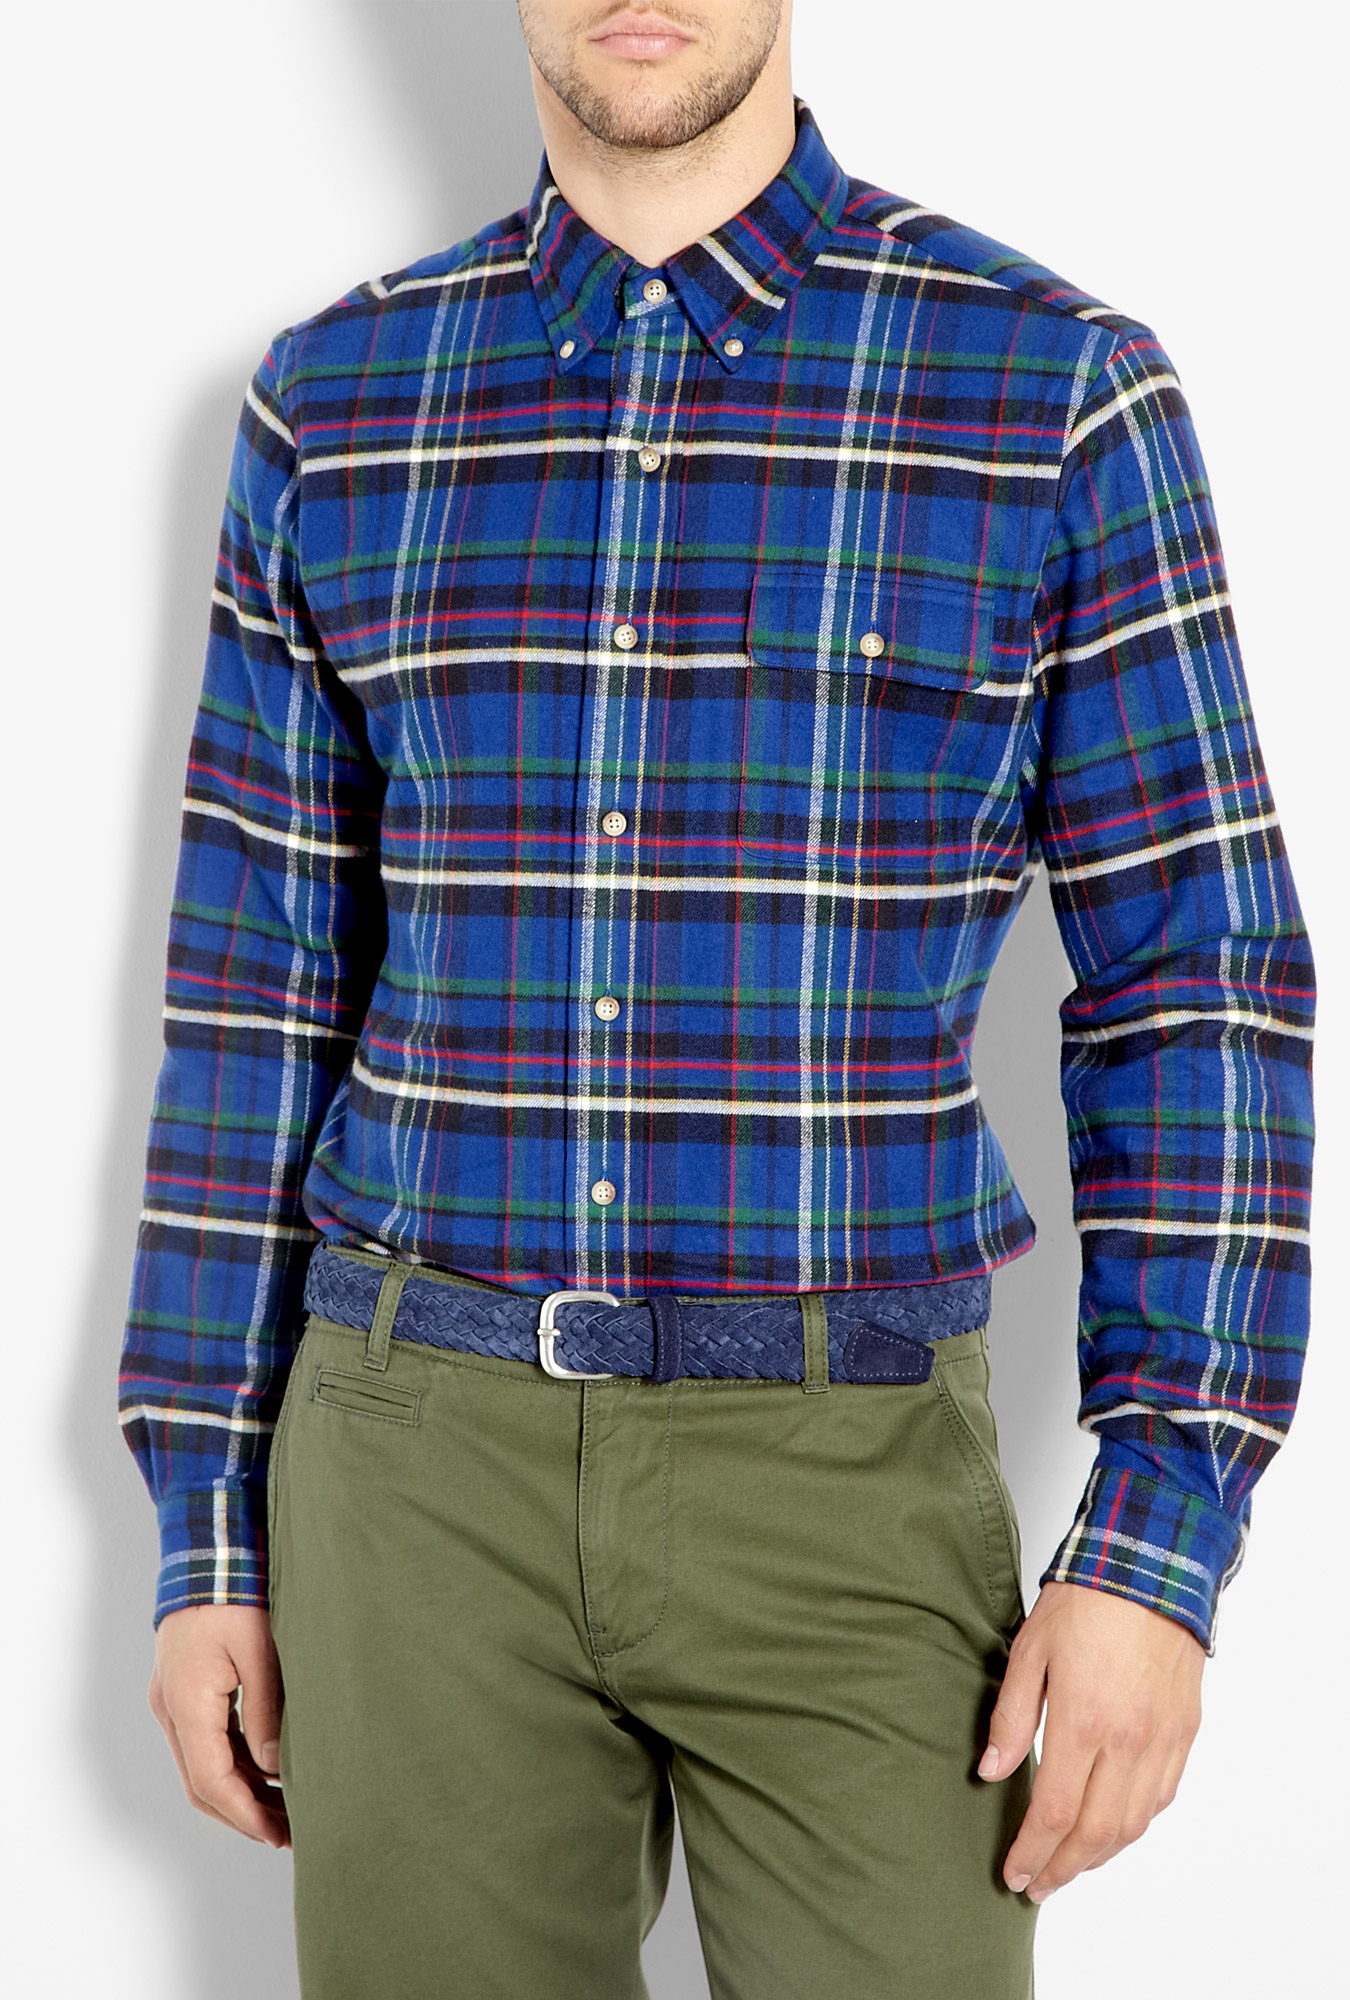 polo ralph lauren royal blue plaid flannel custom shirt in